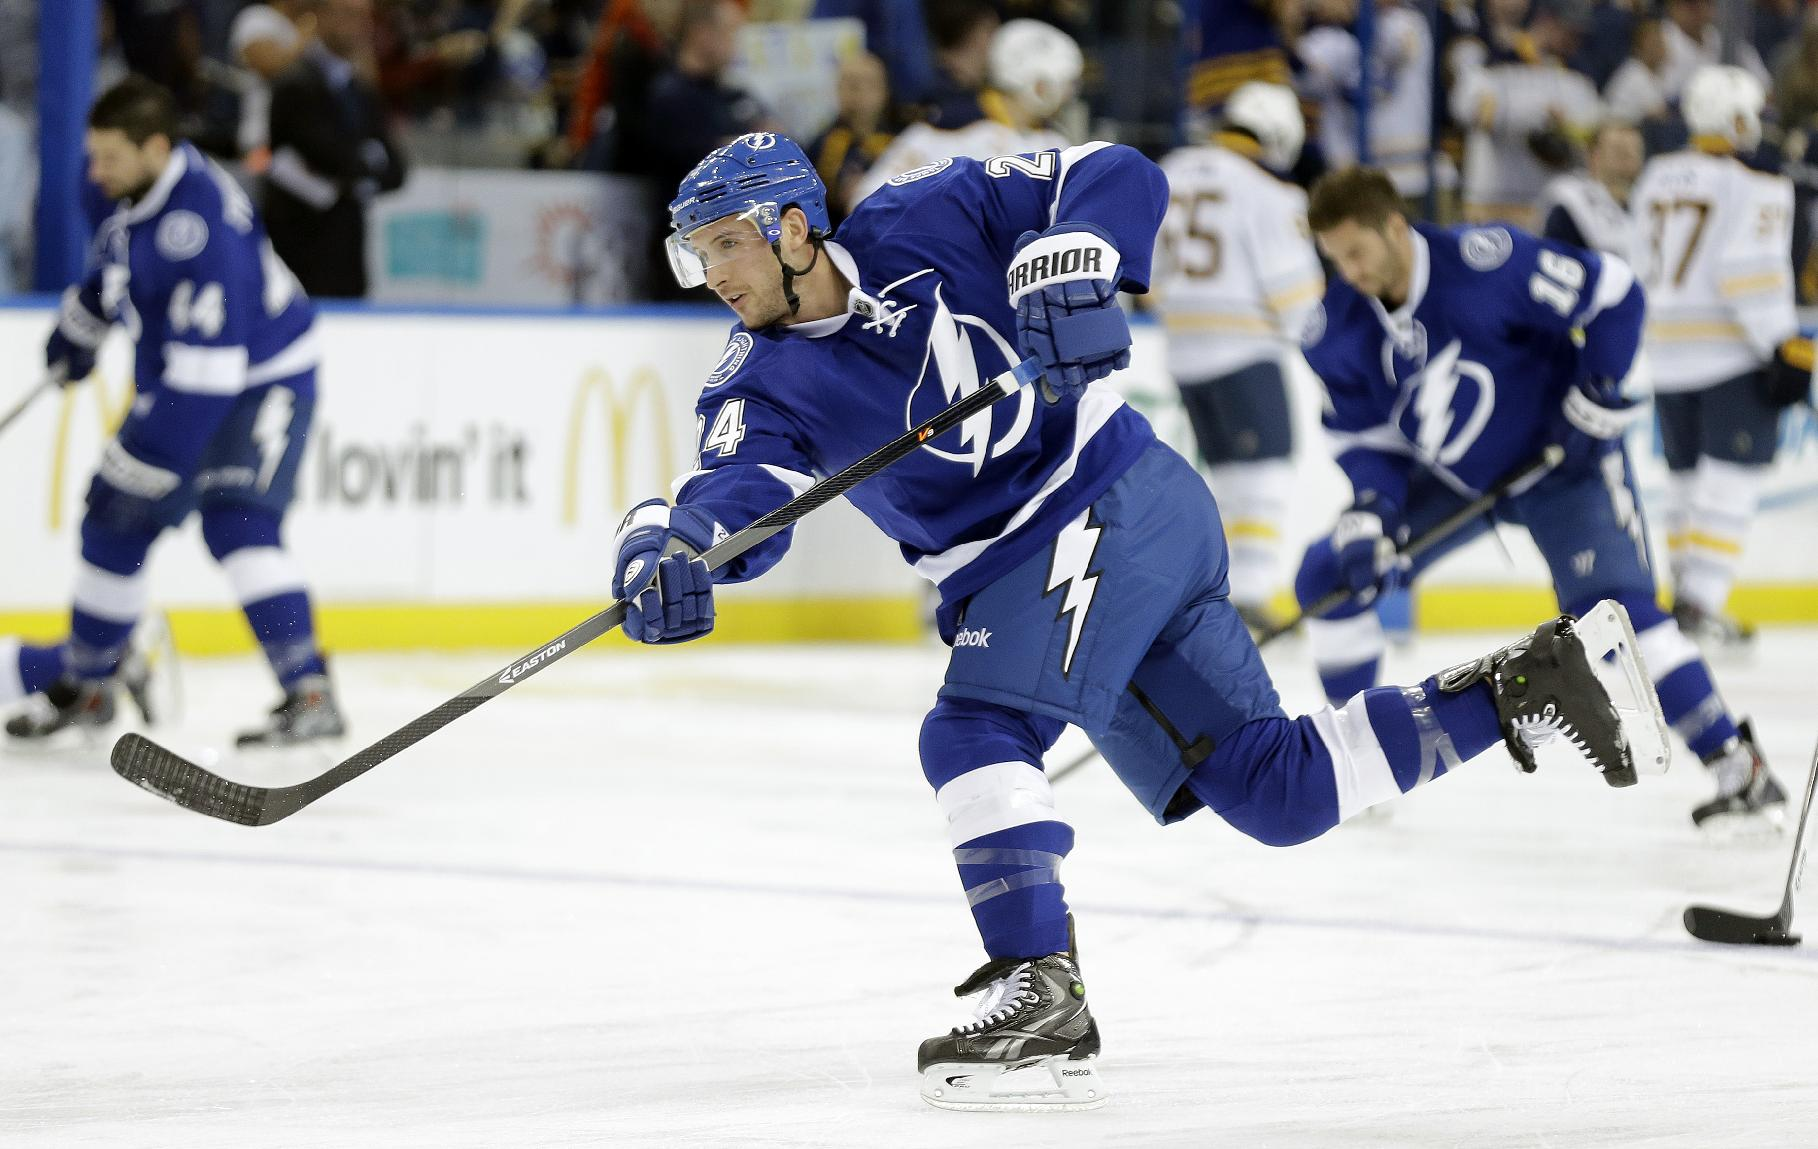 New Tampa Bay Lightning right winger Ryan Callahan (24) skates during warm ups before an NHL hockey game Thursday, March 6, 2014, in Tampa, Fla. Callahan was acquired in a trade with the New York Rangers for Martin St. Louis